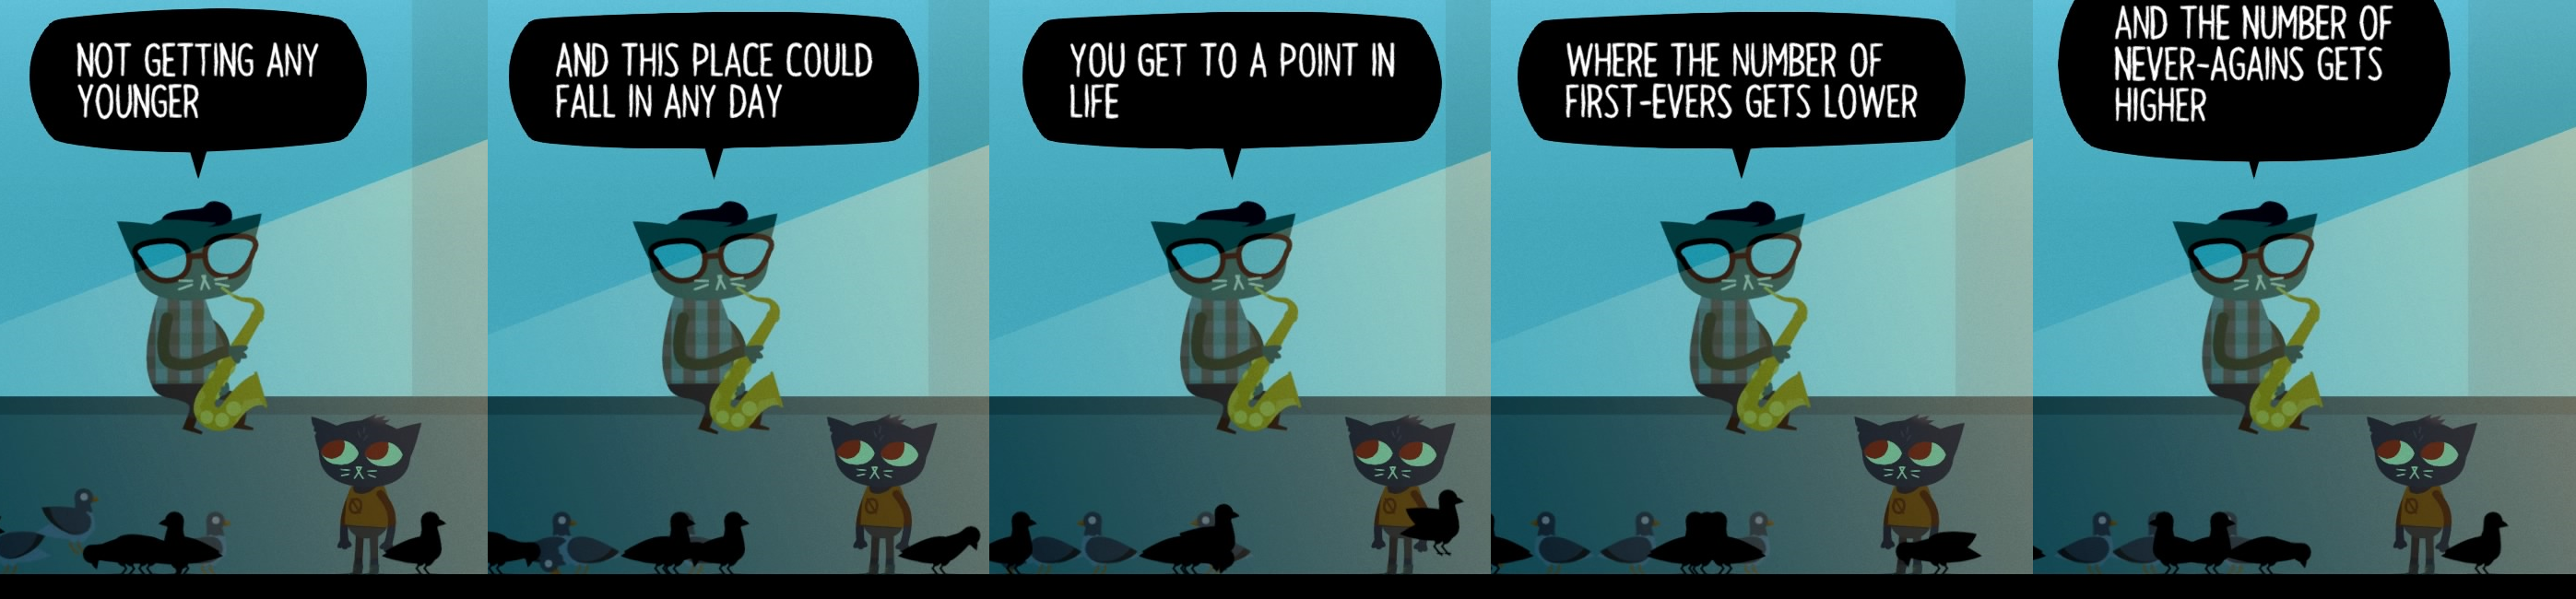 [Image] Don't let it be a 'Never-again' (Game: Night in the Woods)